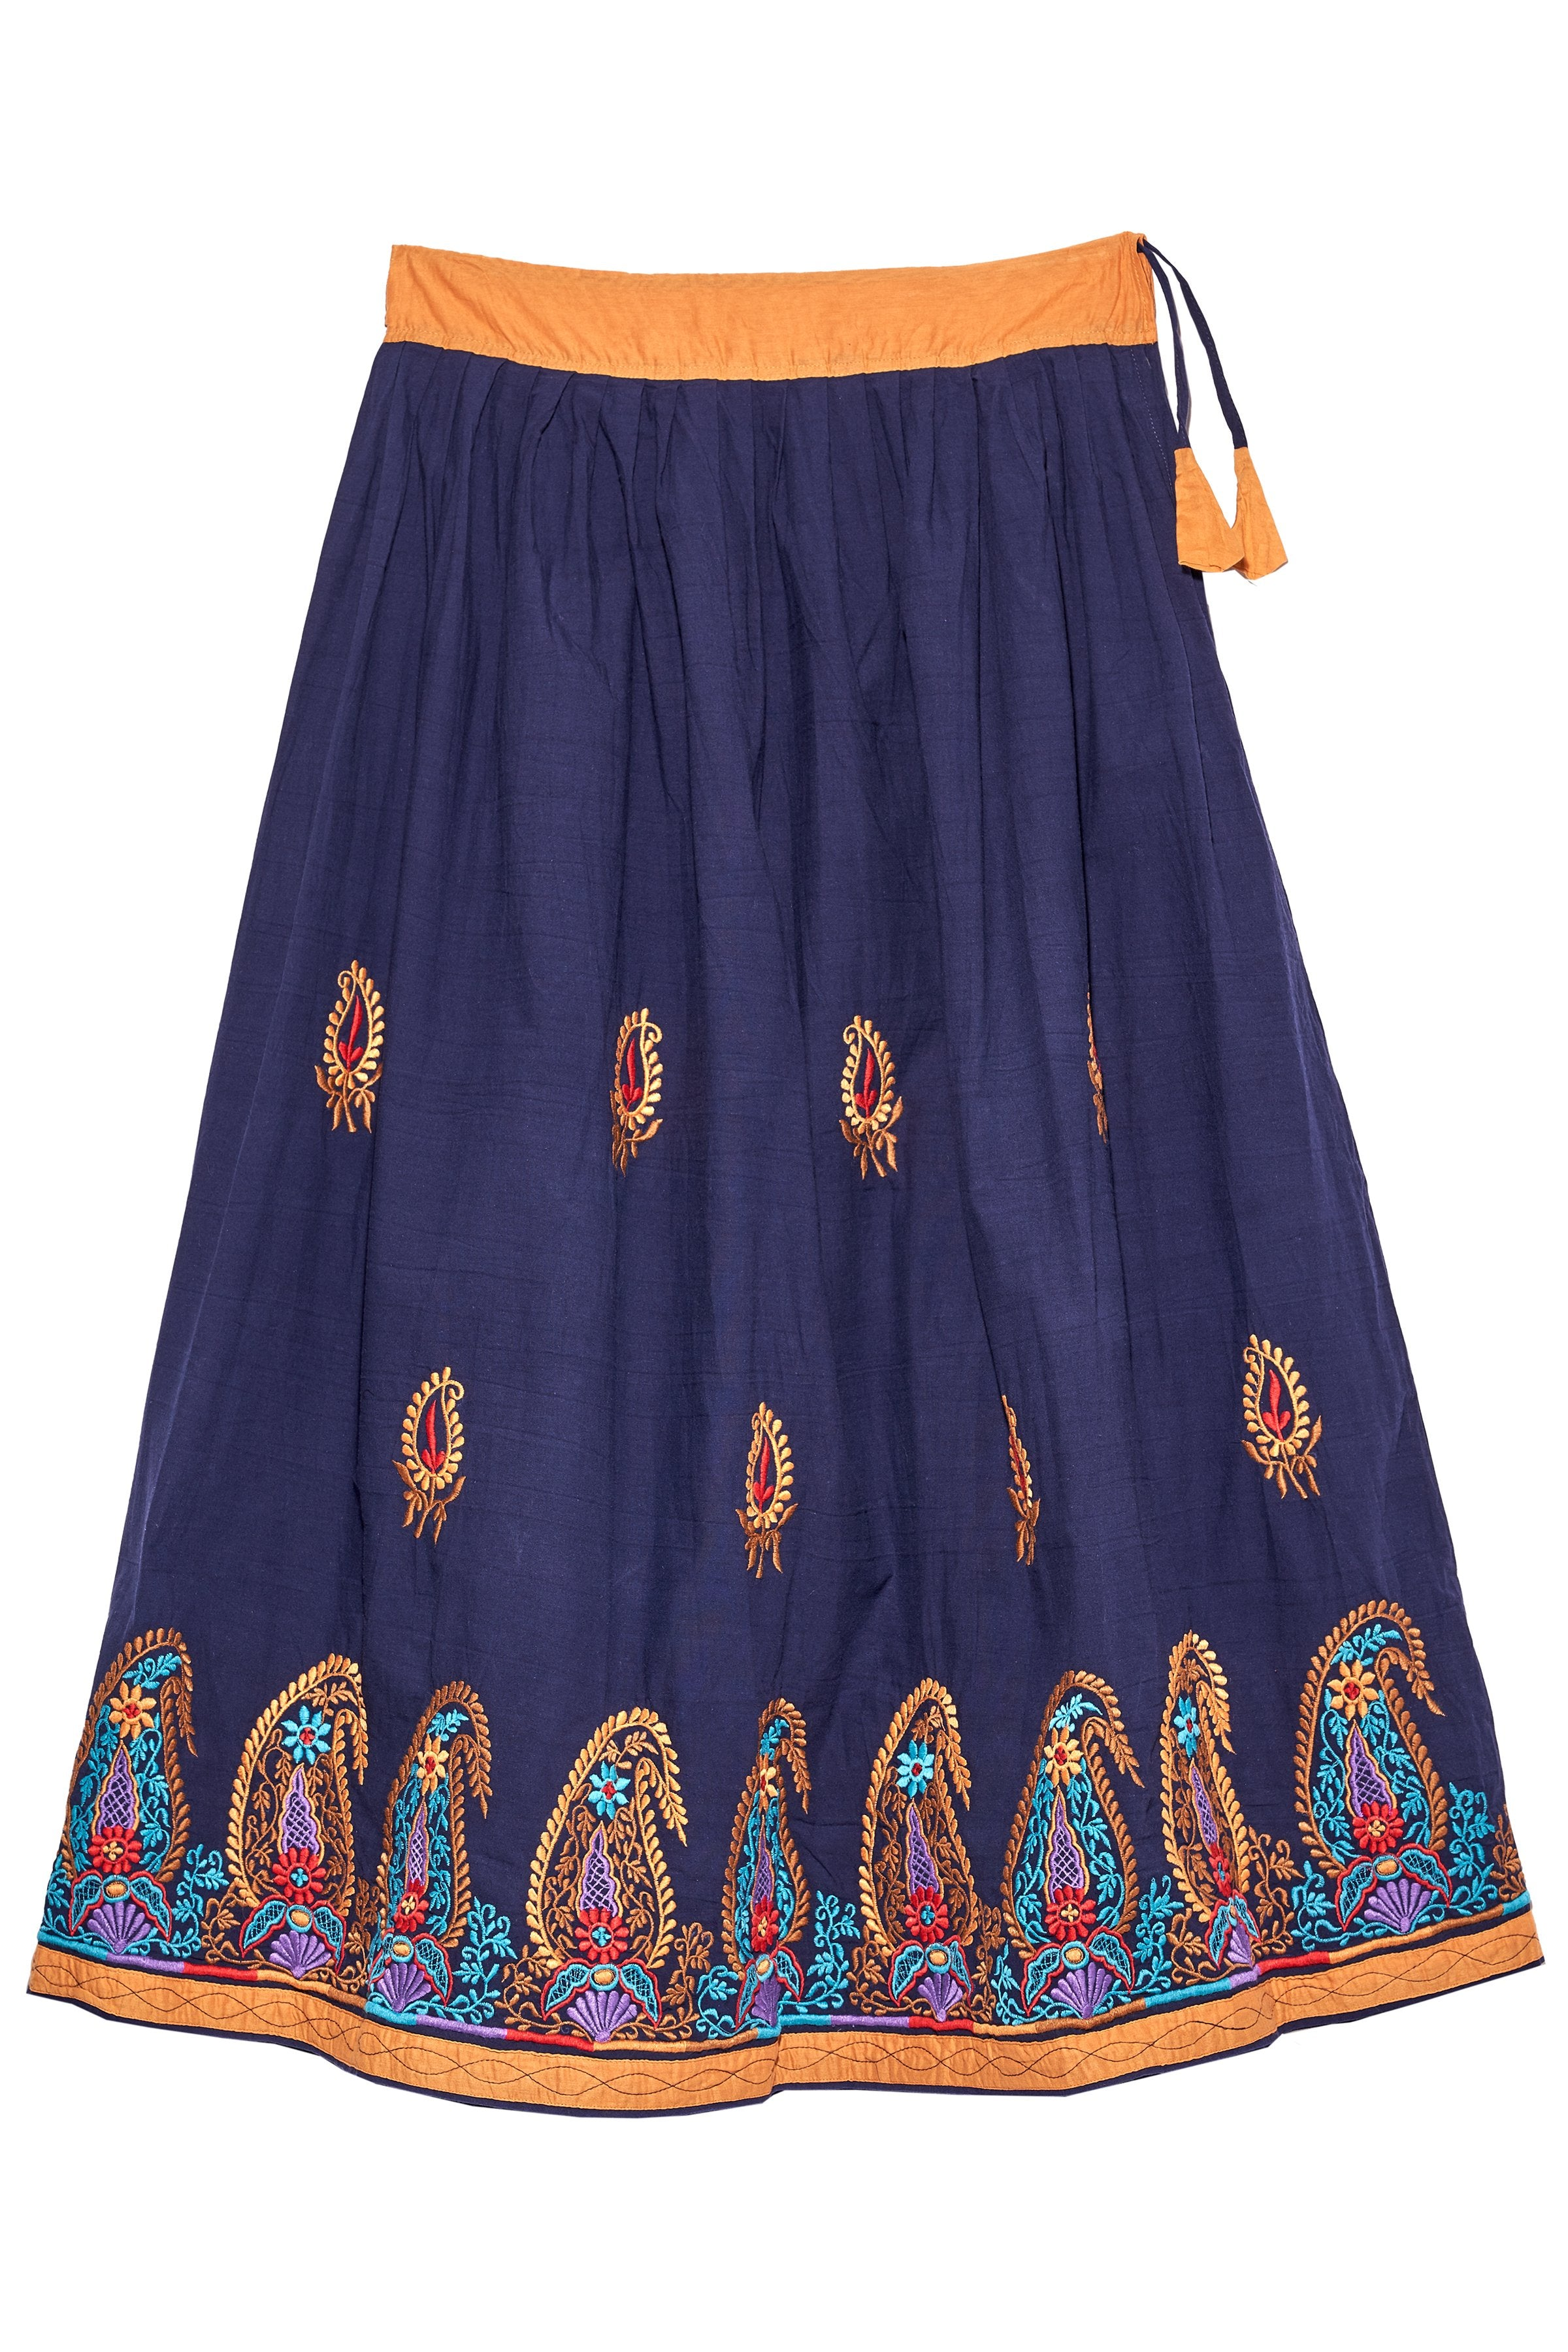 COMMUNITIE - Phulkari Embroidered Skirt